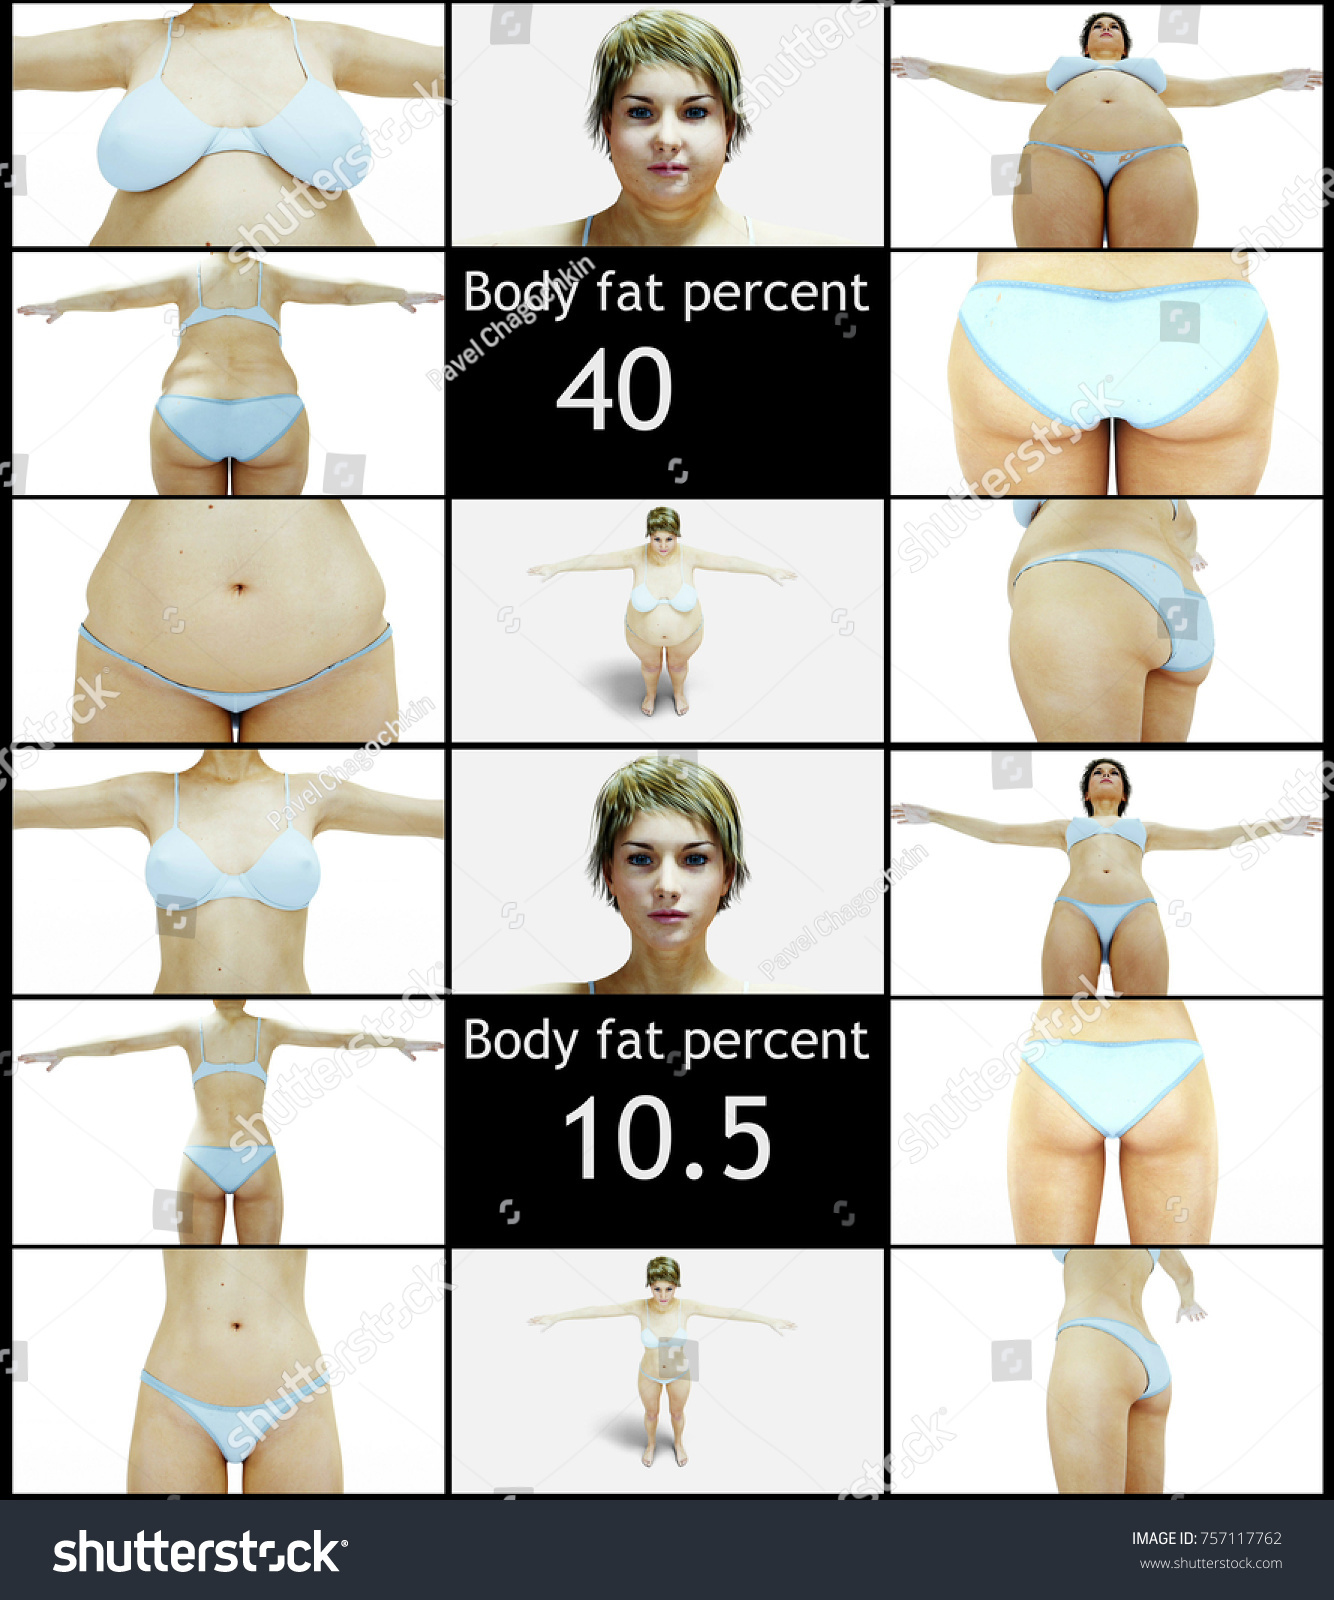 Watch How to Lose Body Fat (Women) video